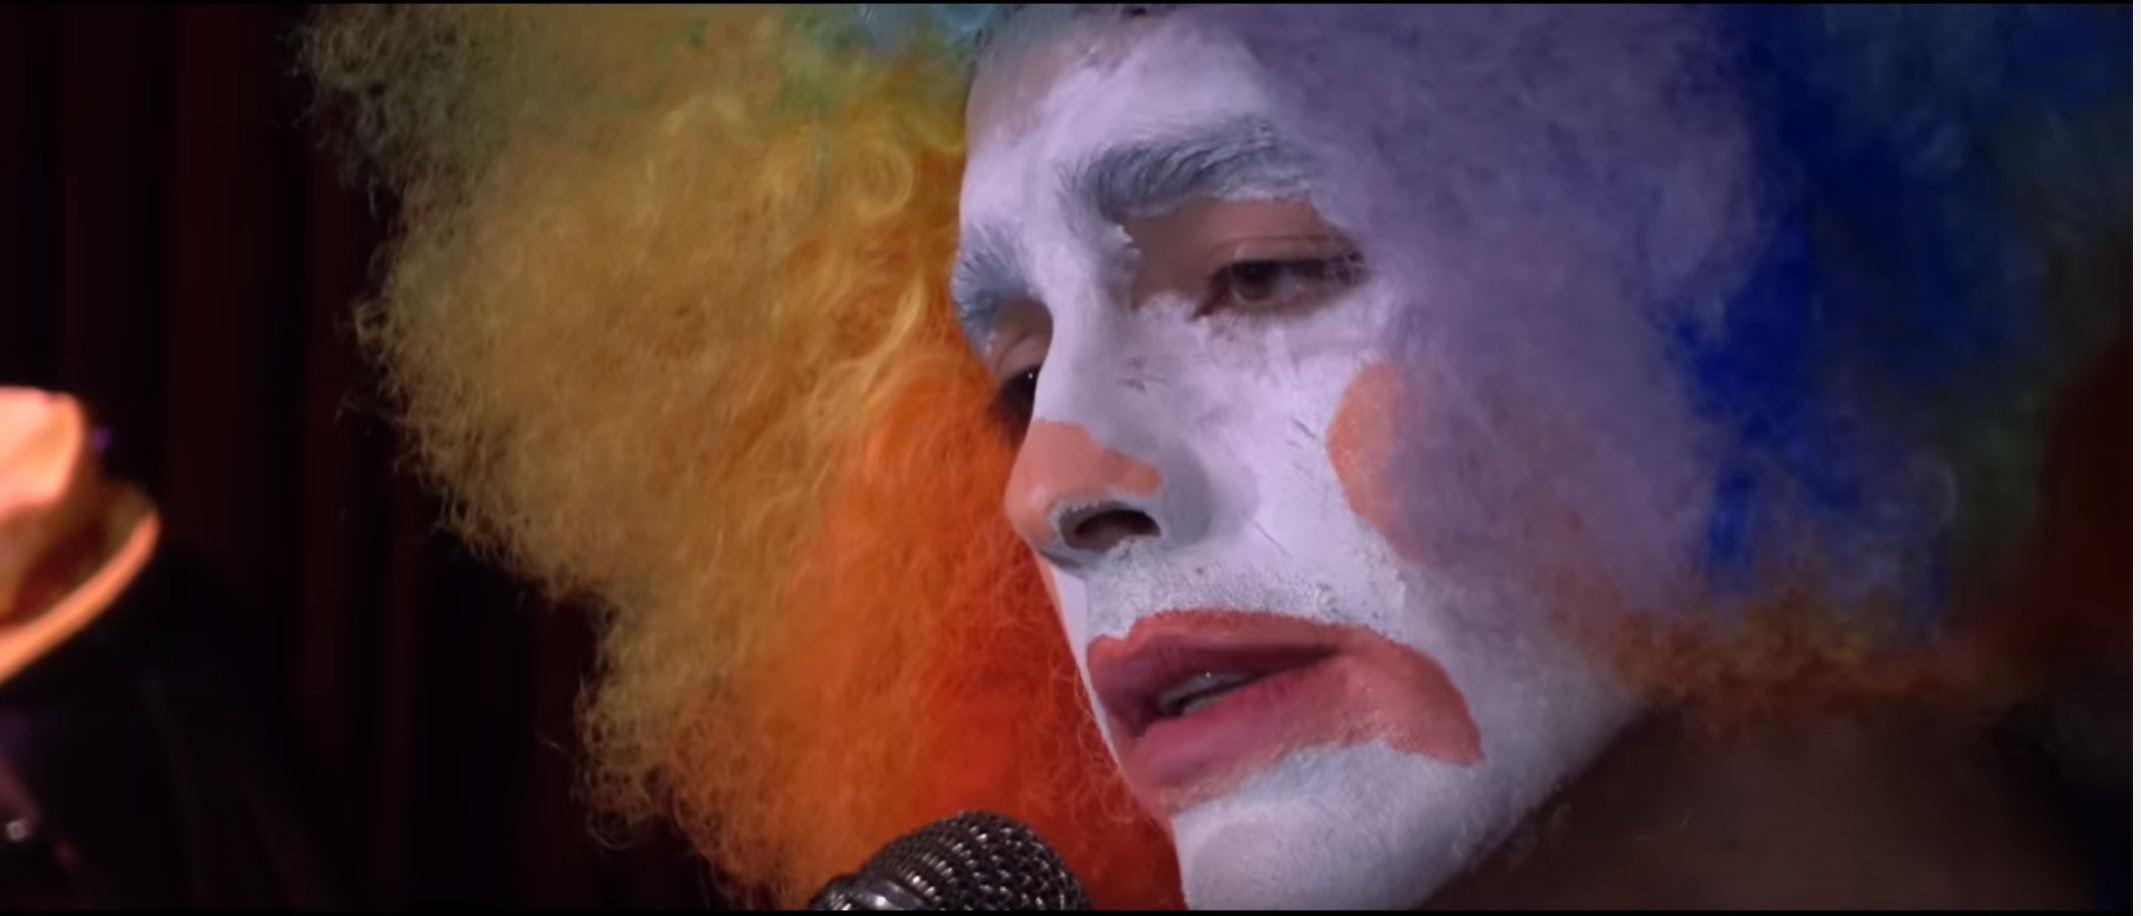 Joe Jonas covers Adele's 'Hello' As A Scary Ass Clown